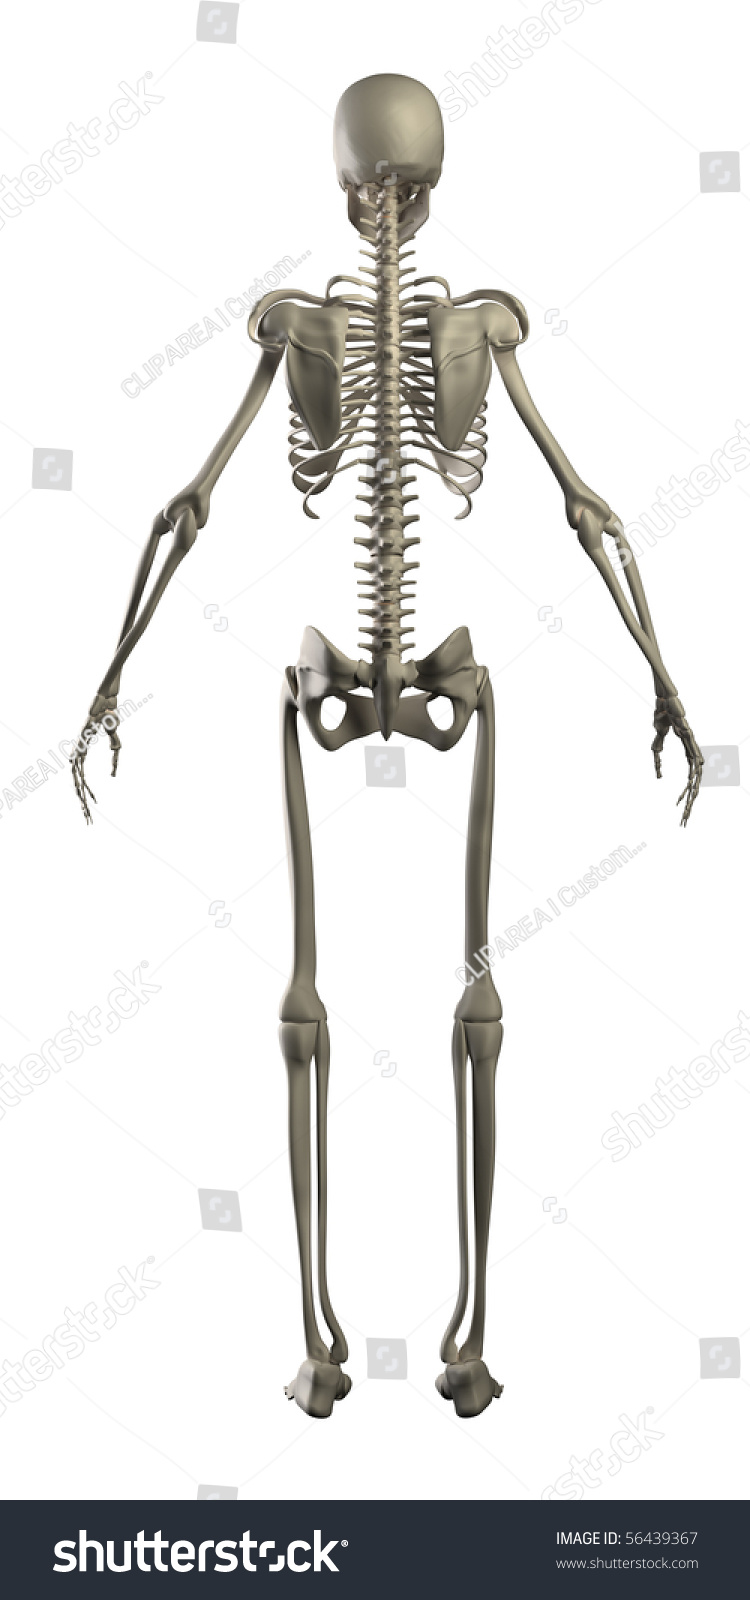 human skeleton isolated rear view stock illustration 56439367, Skeleton